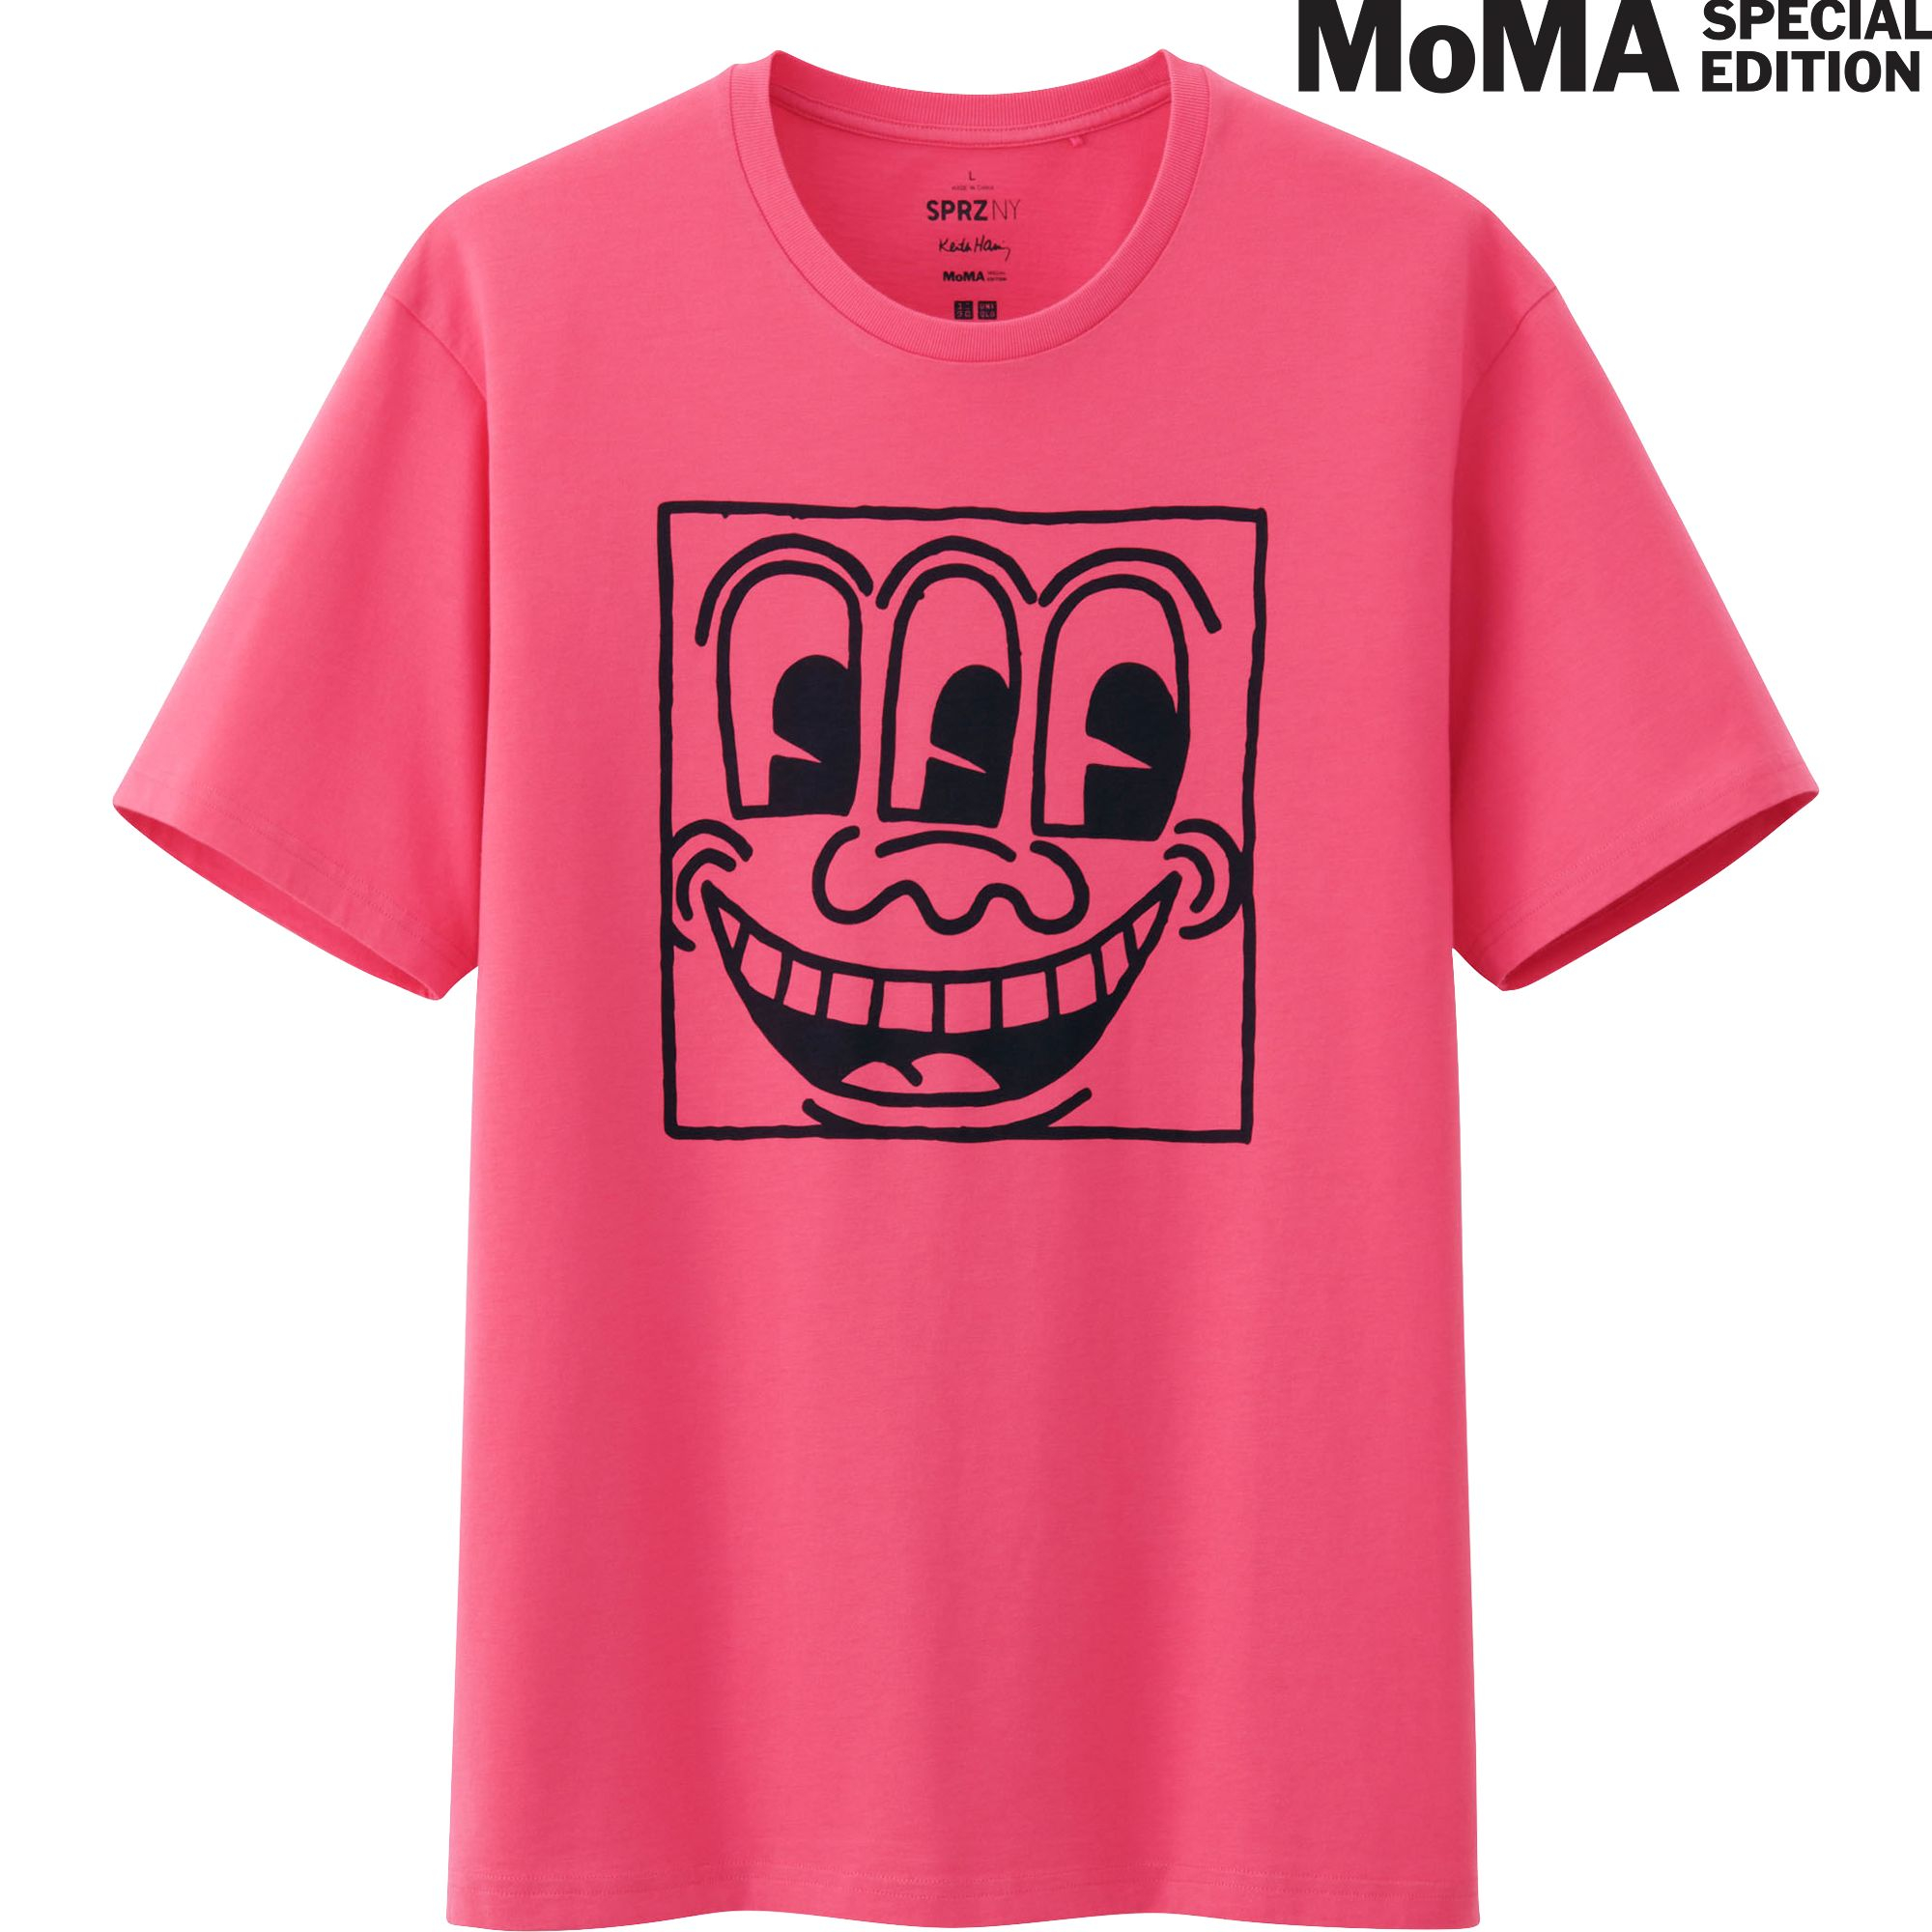 Uniqlo men sprz ny graphic short sleeve t shirt in pink for Uniqlo t shirt sizing